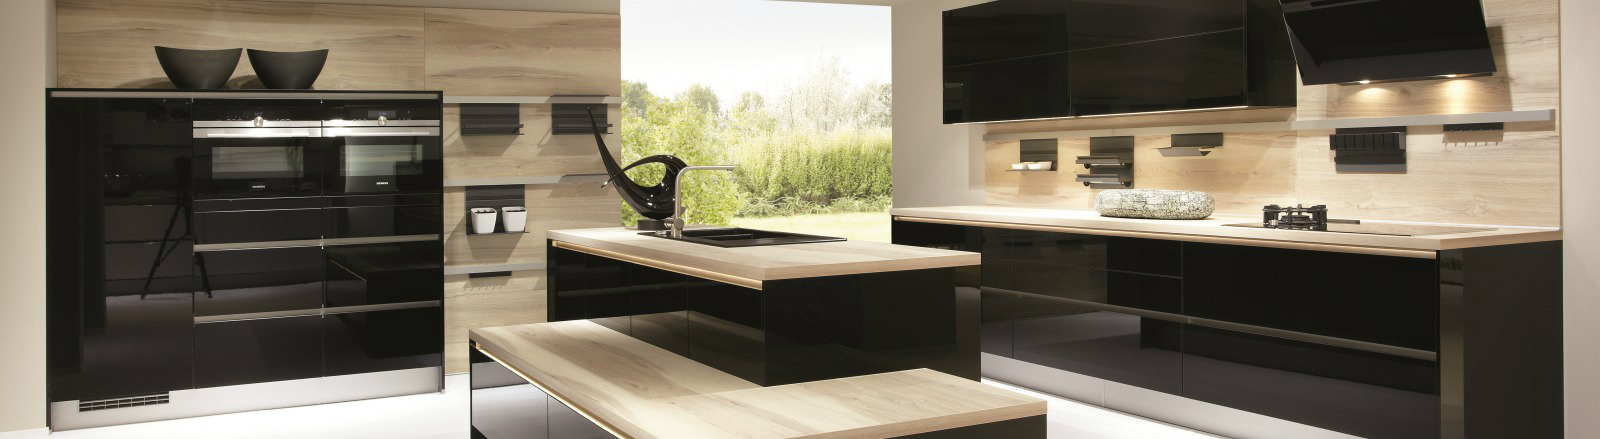 concevoir une cuisine en 3d sofag. Black Bedroom Furniture Sets. Home Design Ideas